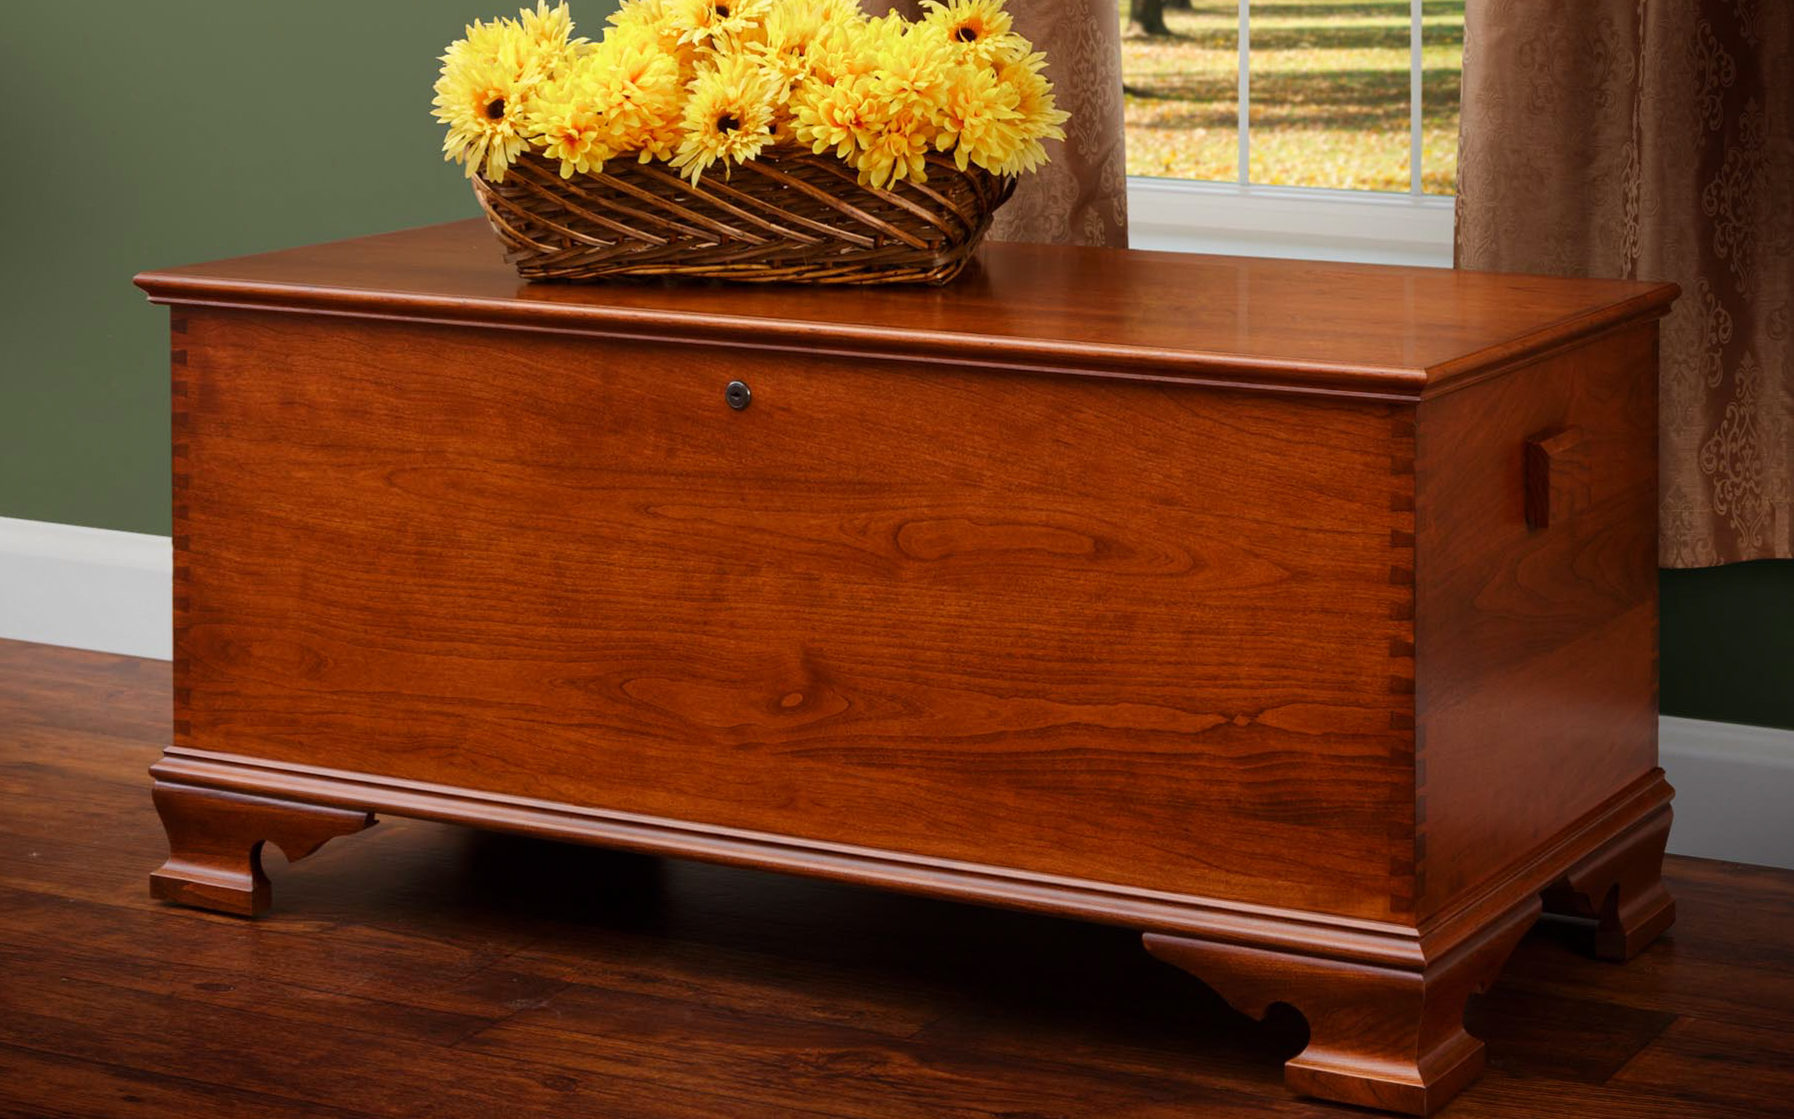 Quality Built Reproduction Hope Chest